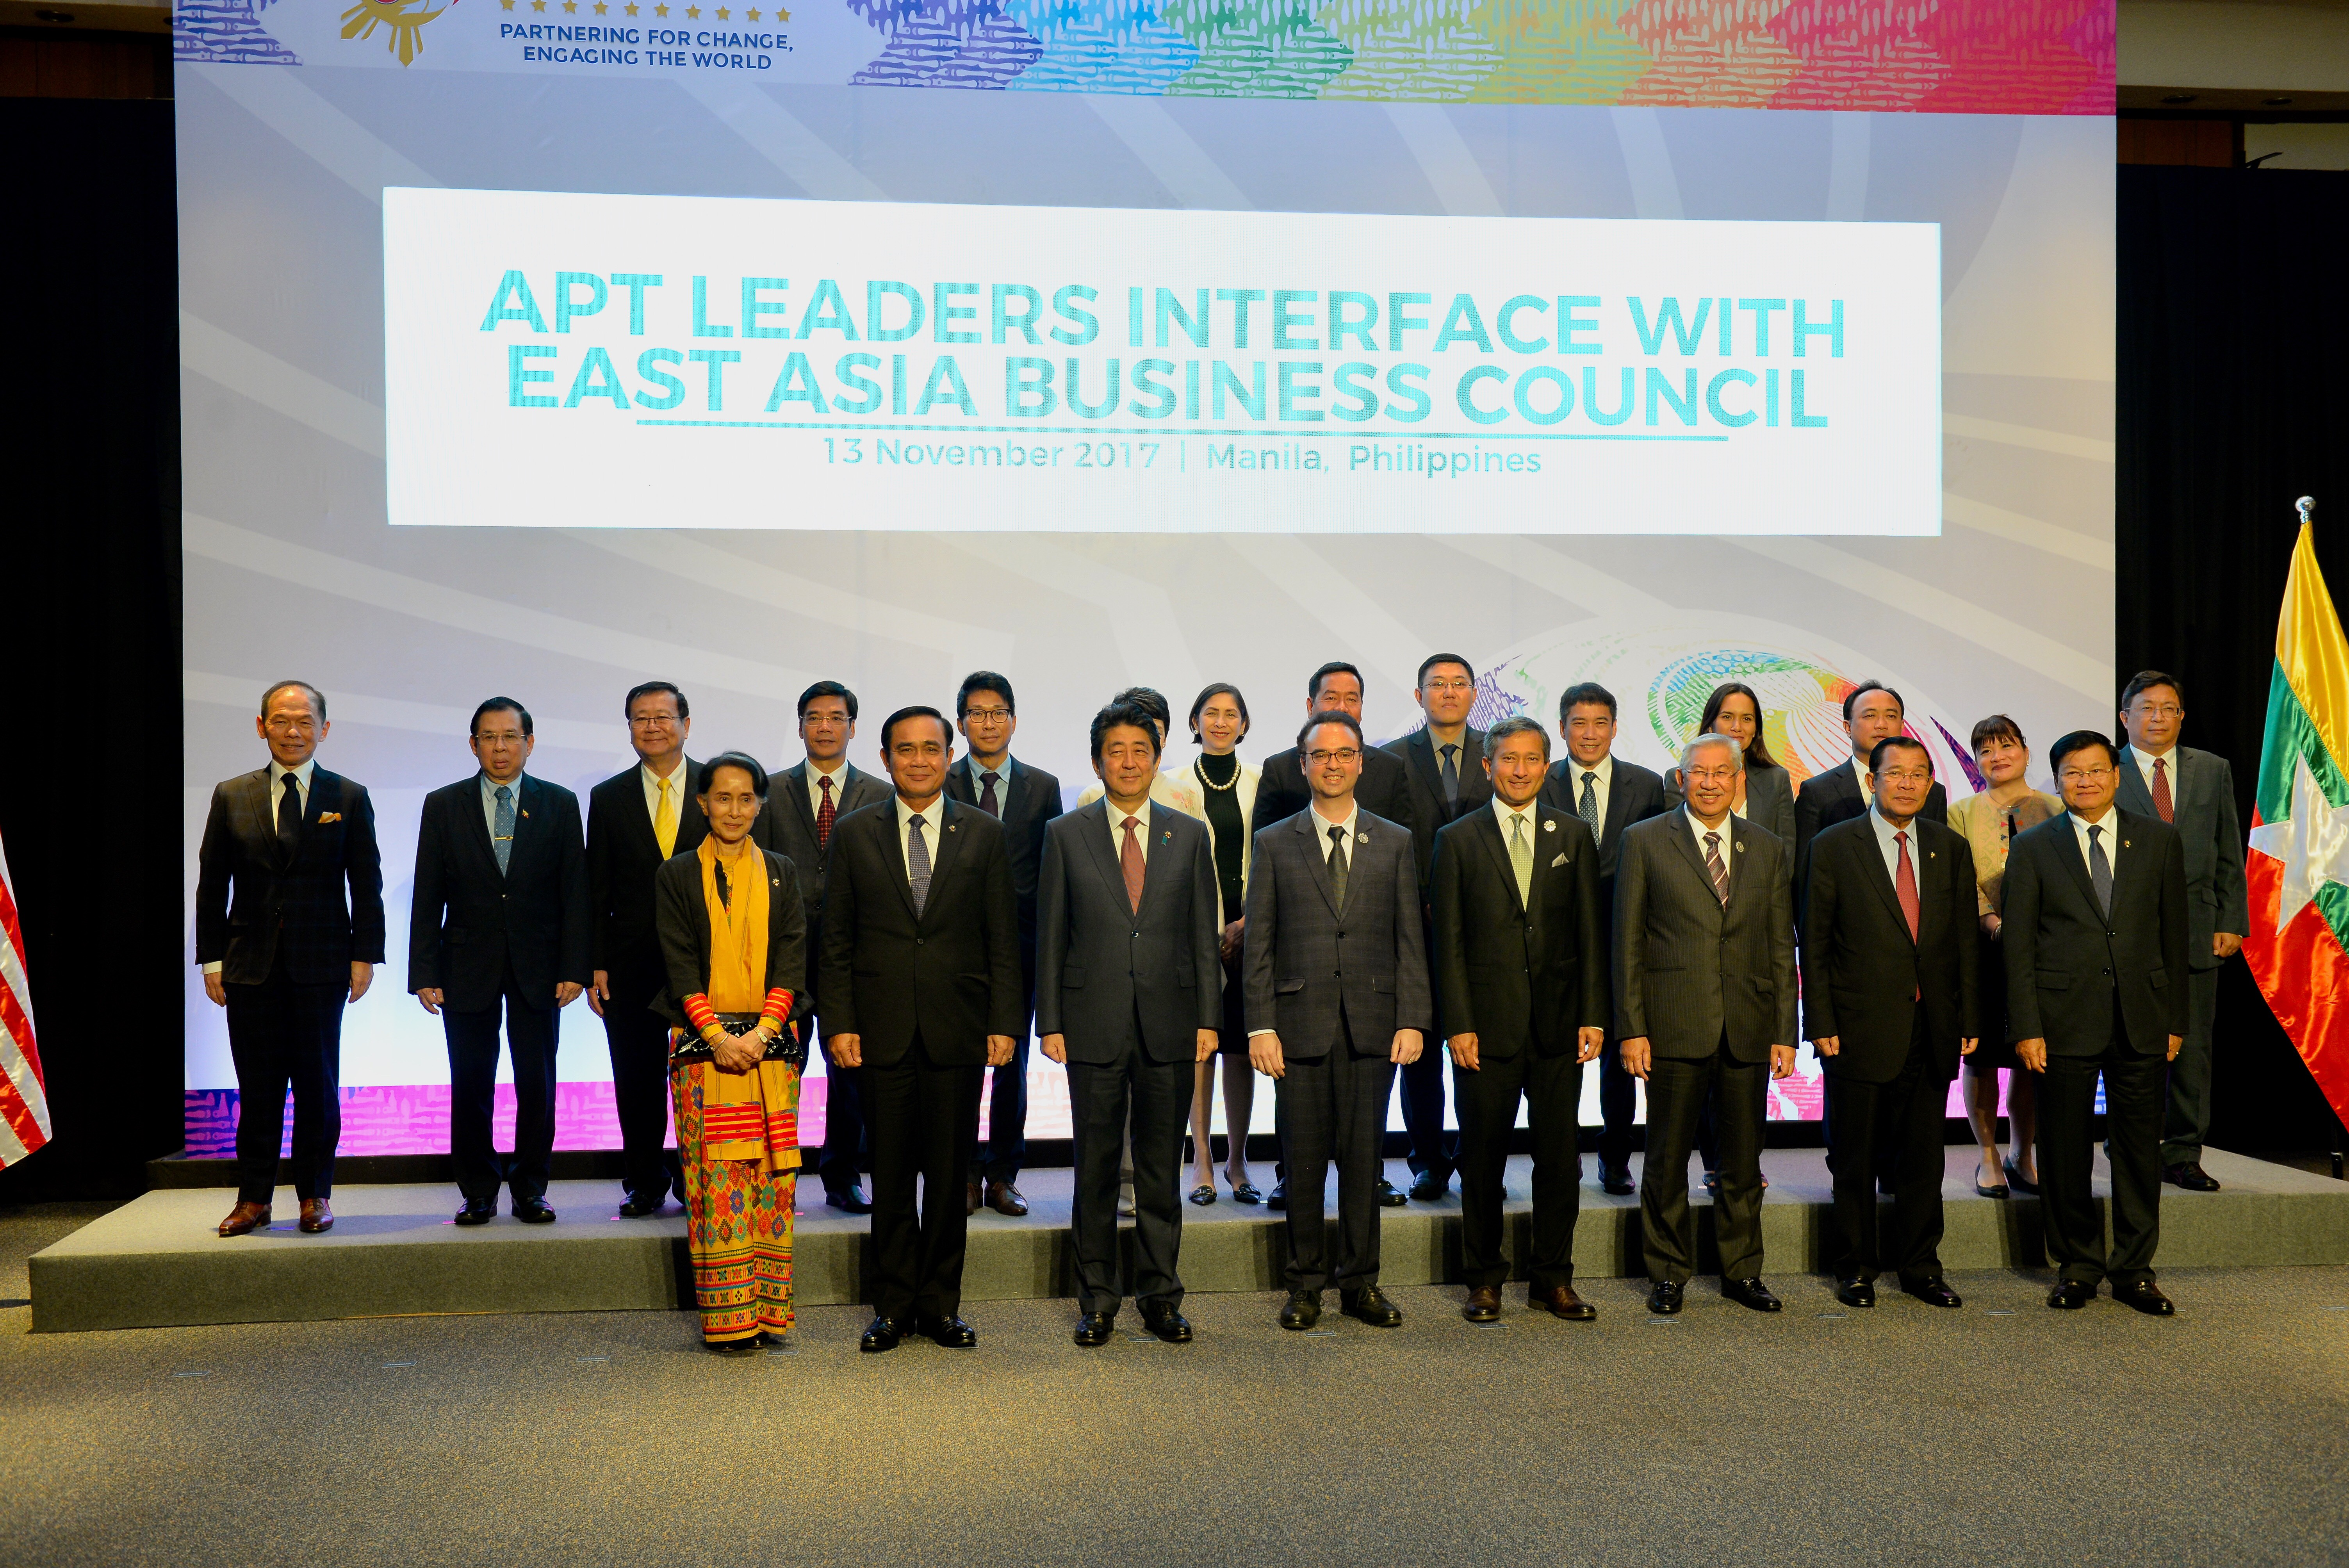 ASEAN PLUS THREE. The leaders of the ASEAN Plus Three, which includes ASEAN member-states, People's Republic of China, Japan, and the Republic of Korea, pose for a photo during the 20th APT Commemorative Summit. Photo by Angie de Silva/Rappler